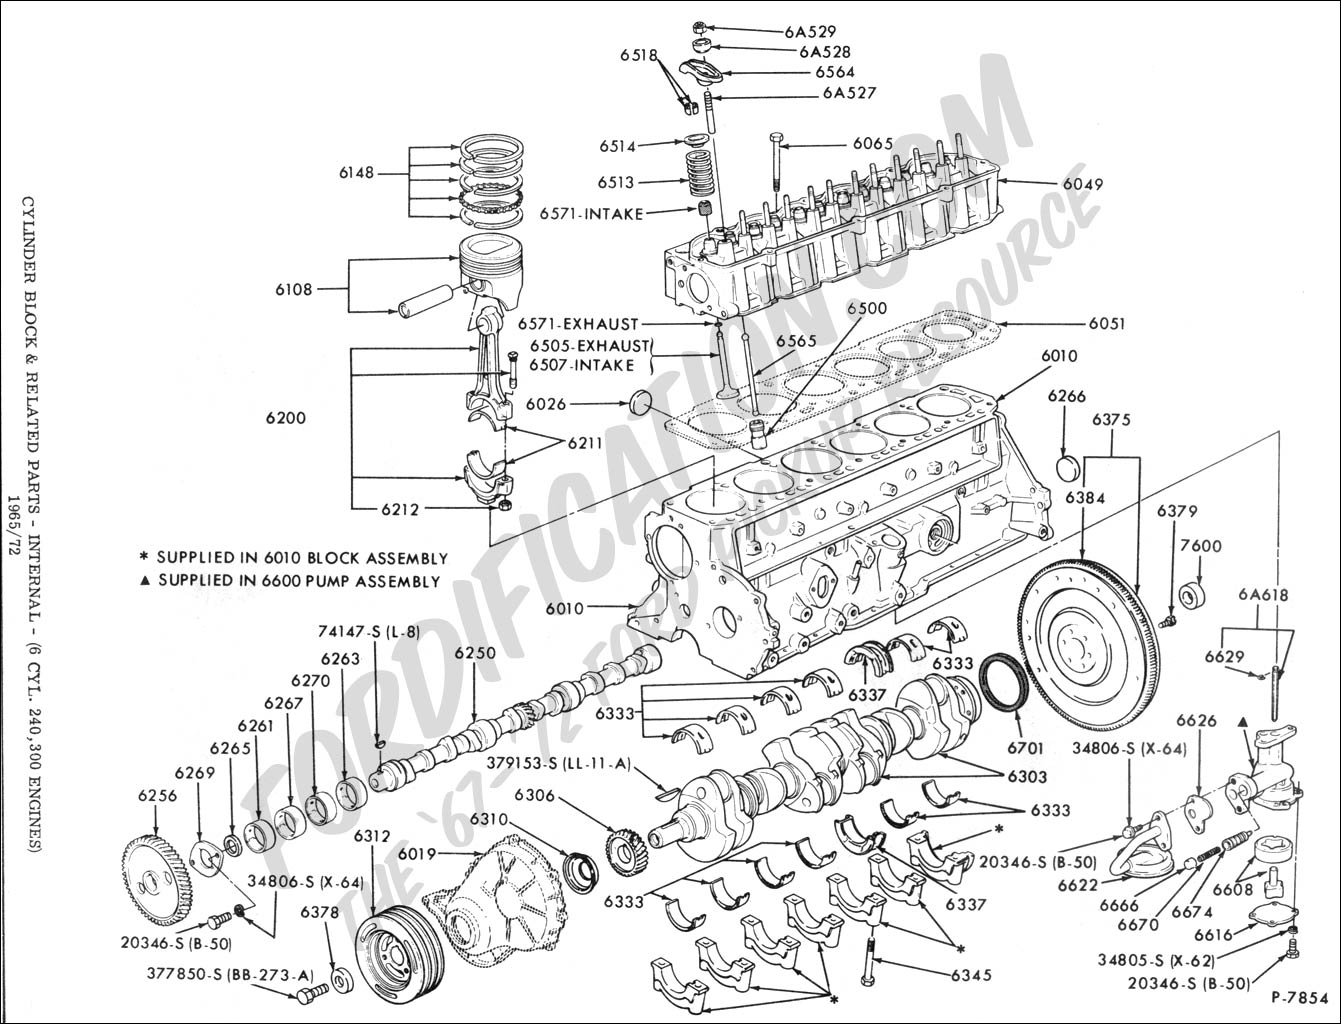 1966 mustang 289 wiring diagram 1966 free engine image for user manual